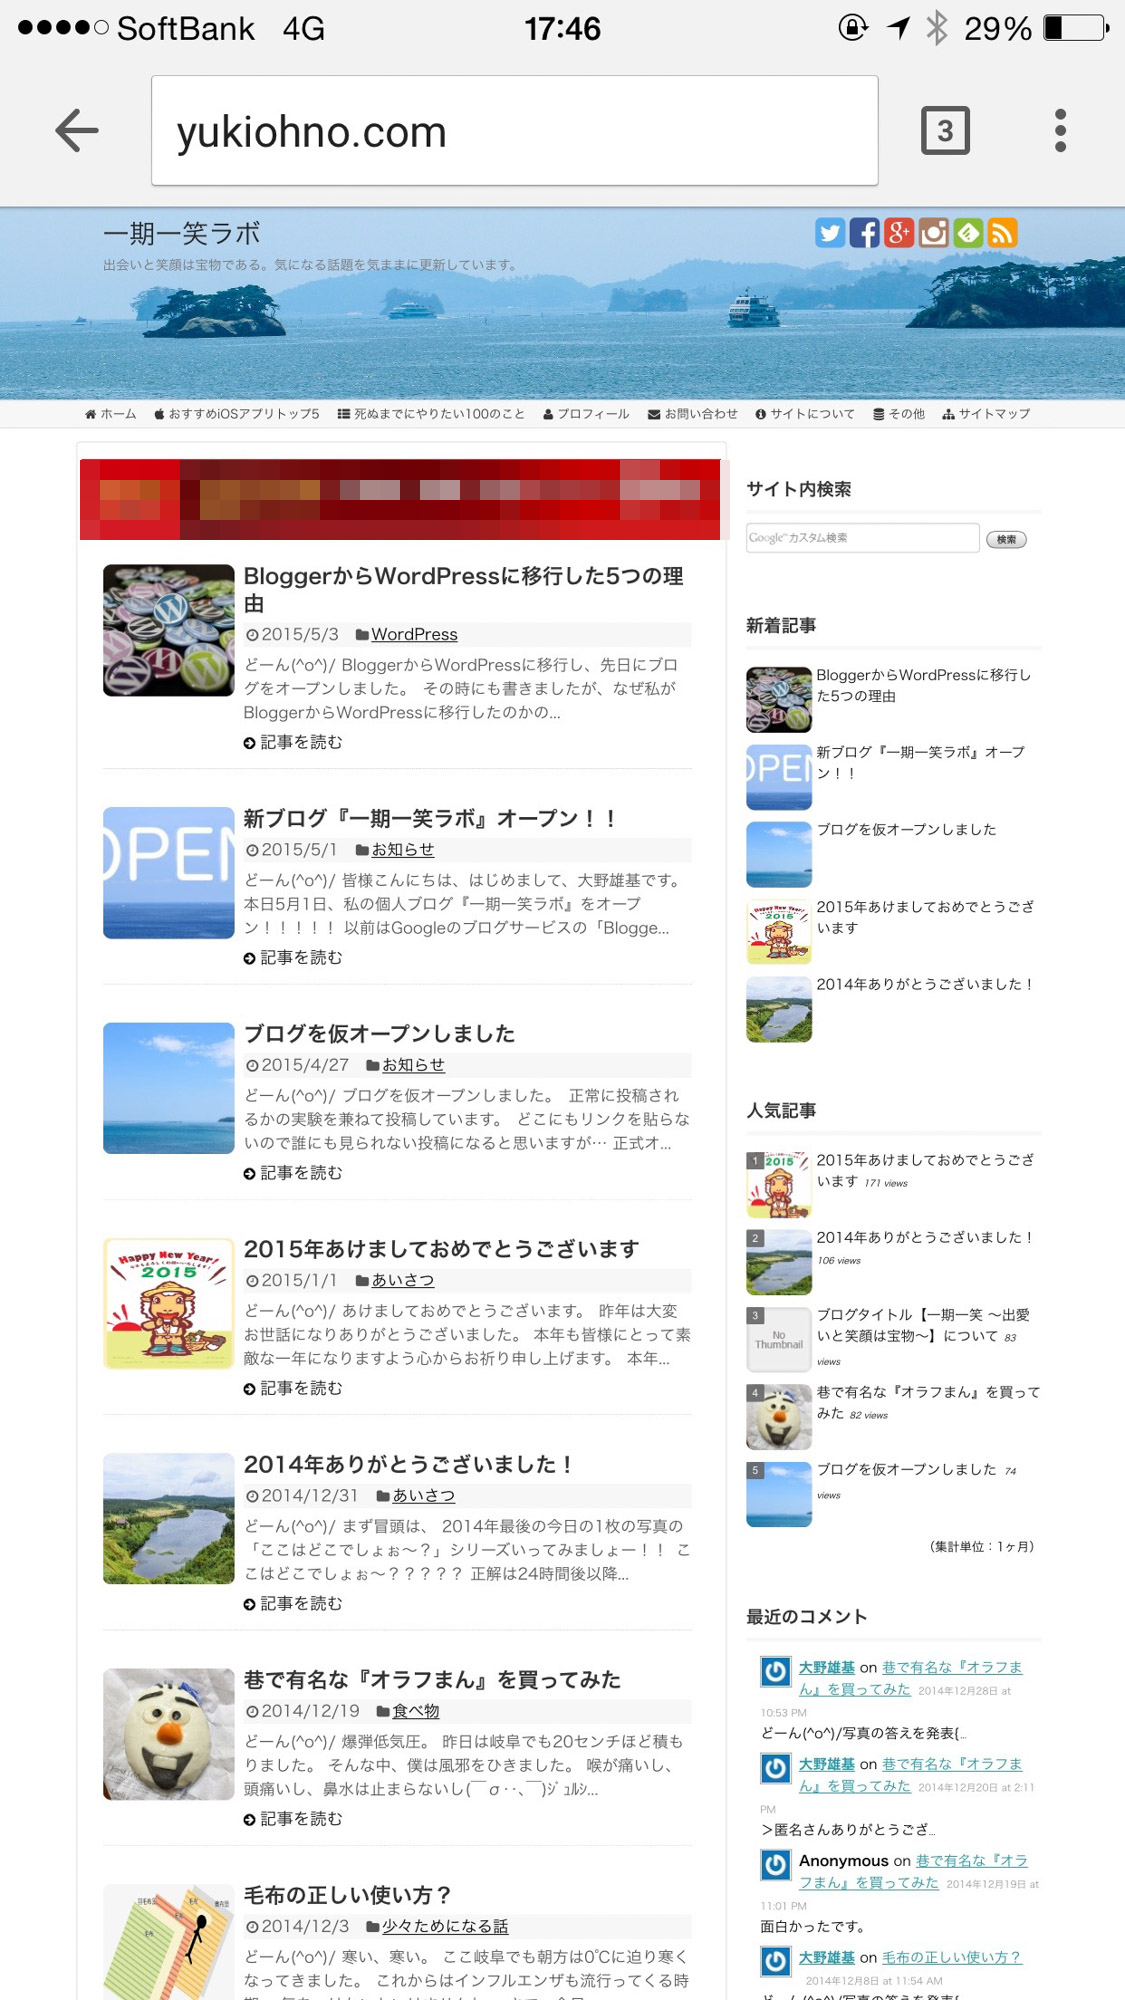 browser-wp-4251